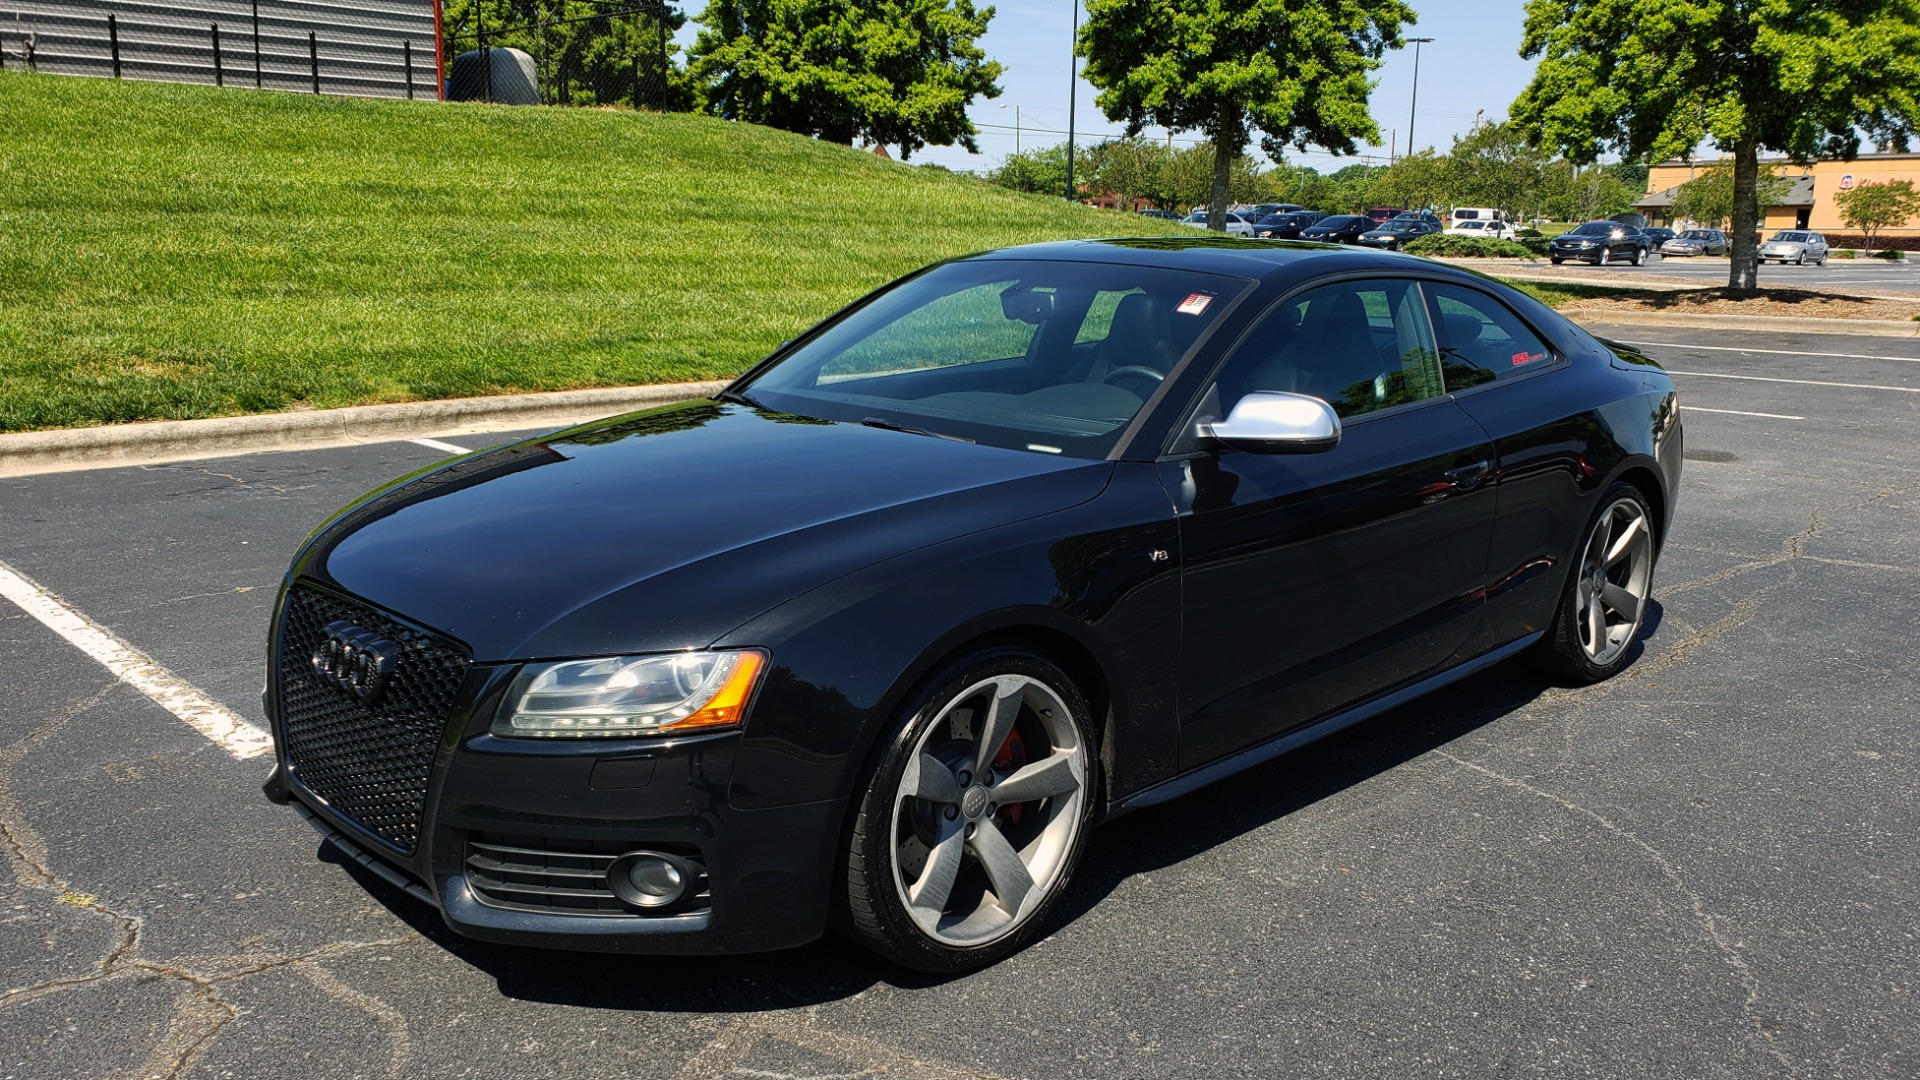 Used 2011 Audi S5 PREMIUM PLUS / AVENGERS COUPE / NAV / SUNROOF / REARVIEW for sale Sold at Formula Imports in Charlotte NC 28227 1